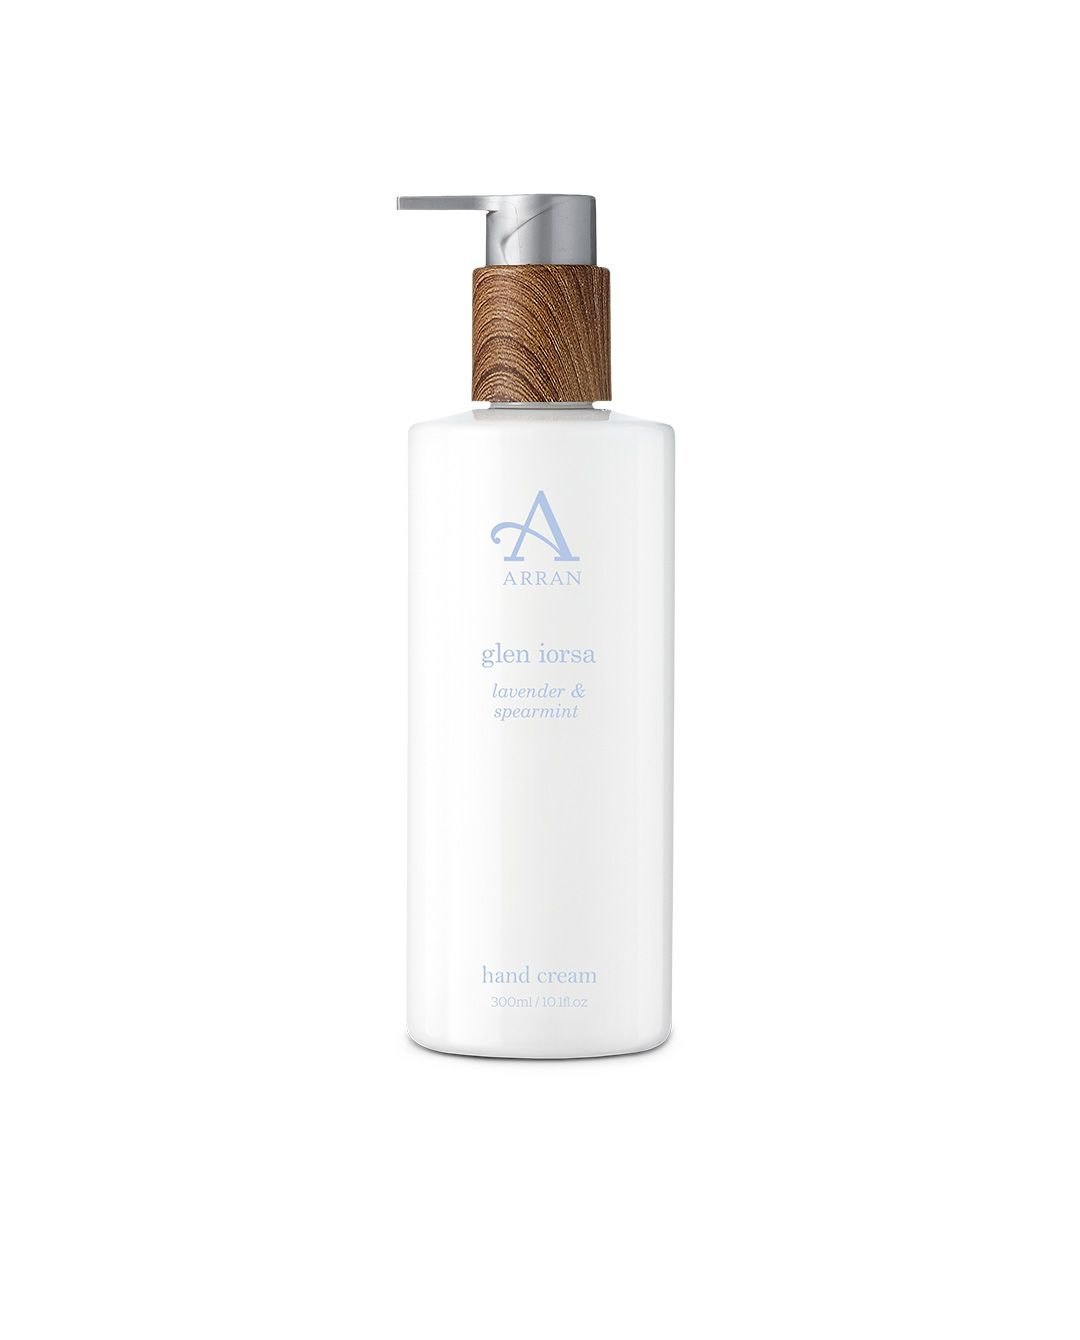 Arran Aromatics Glen Iorsa Calming Mist Spray 100ml